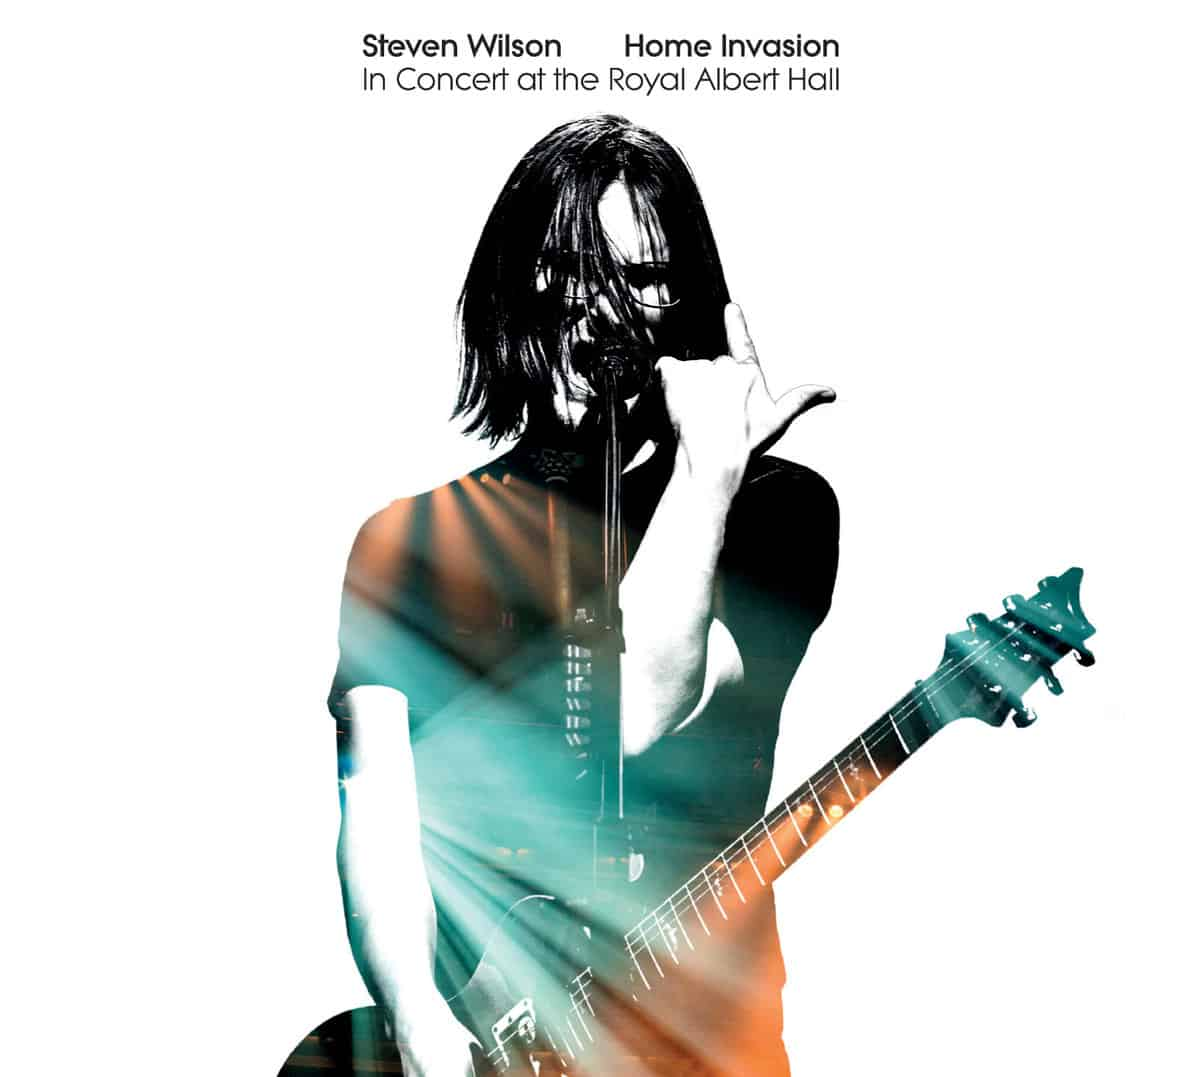 Steven Wilson-Home Invasion: In Concert At The Royal Albert Hall (CD+DVD)